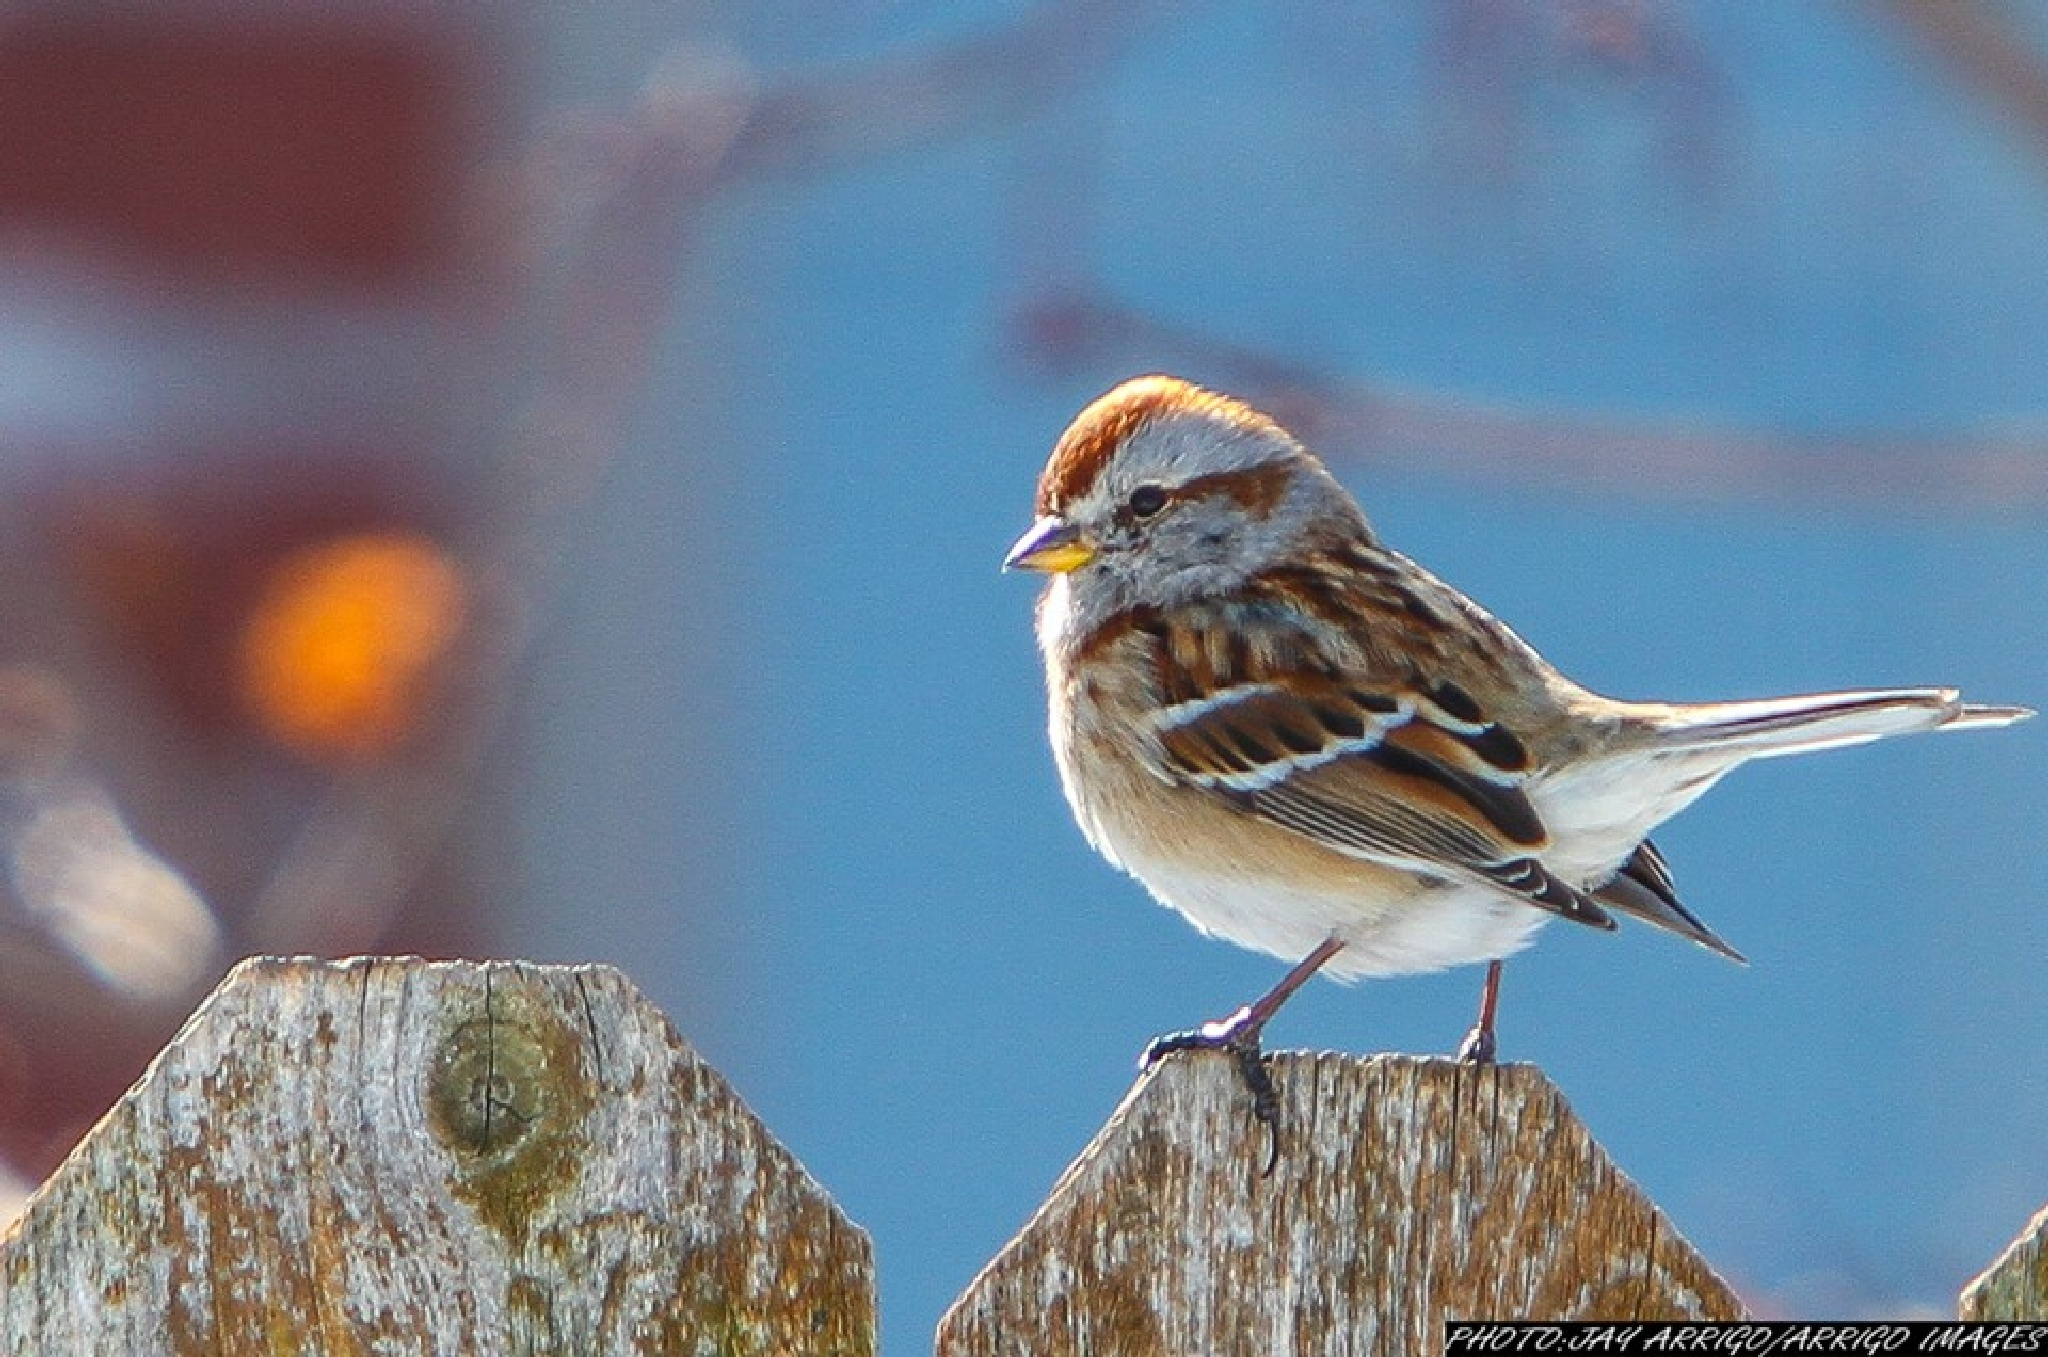 Sparrow by carmen.arrigo